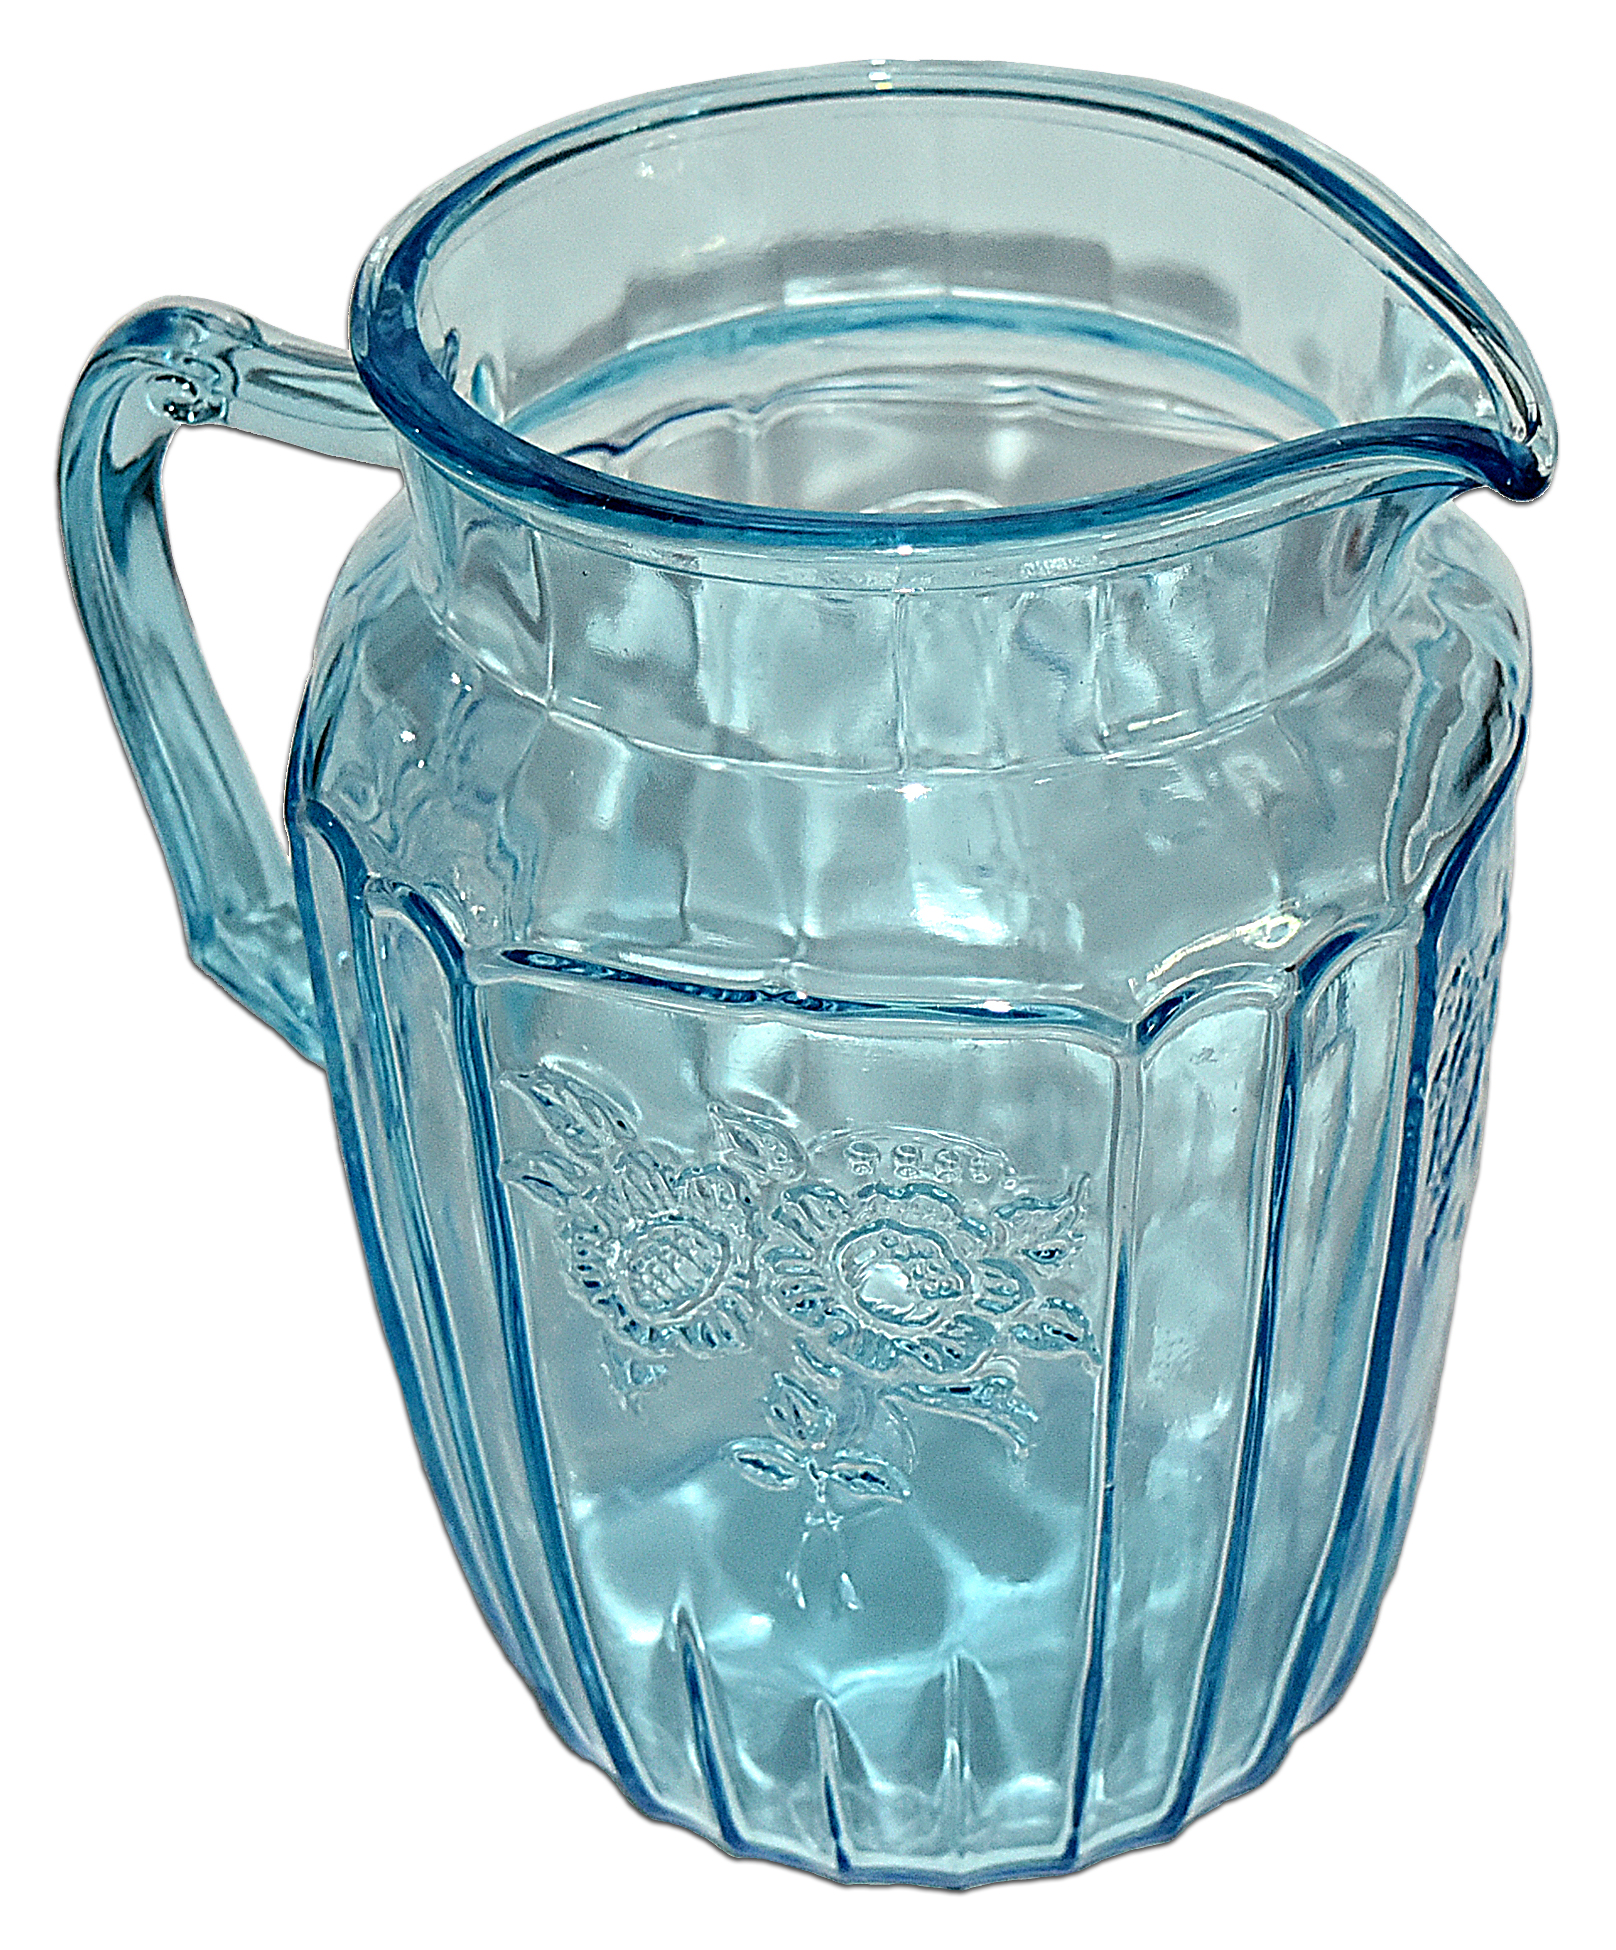 Hocking Blue Mayfair Large Pitcher / Jug The Other Side